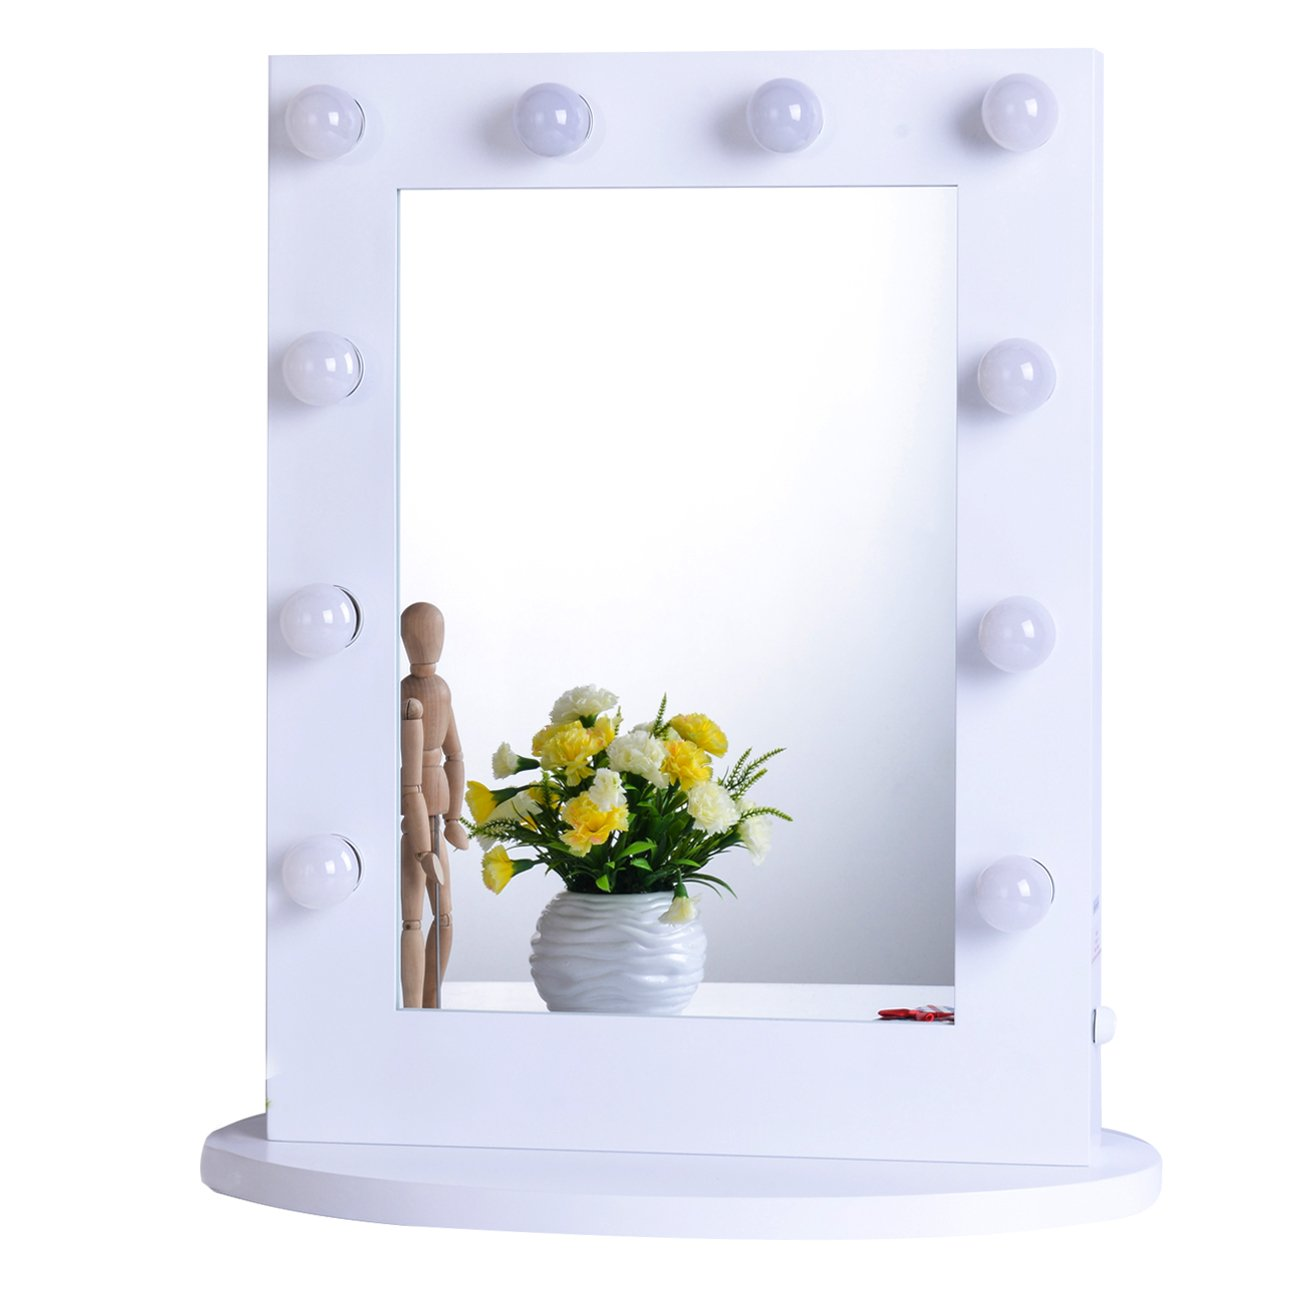 Amazon.com: Chende White Hollywood Makeup Vanity Mirror with Light  Tabletops Lighted Mirror with Dimmer, LED Illuminated Cosmetic Mirror with  LED Dimmable ...